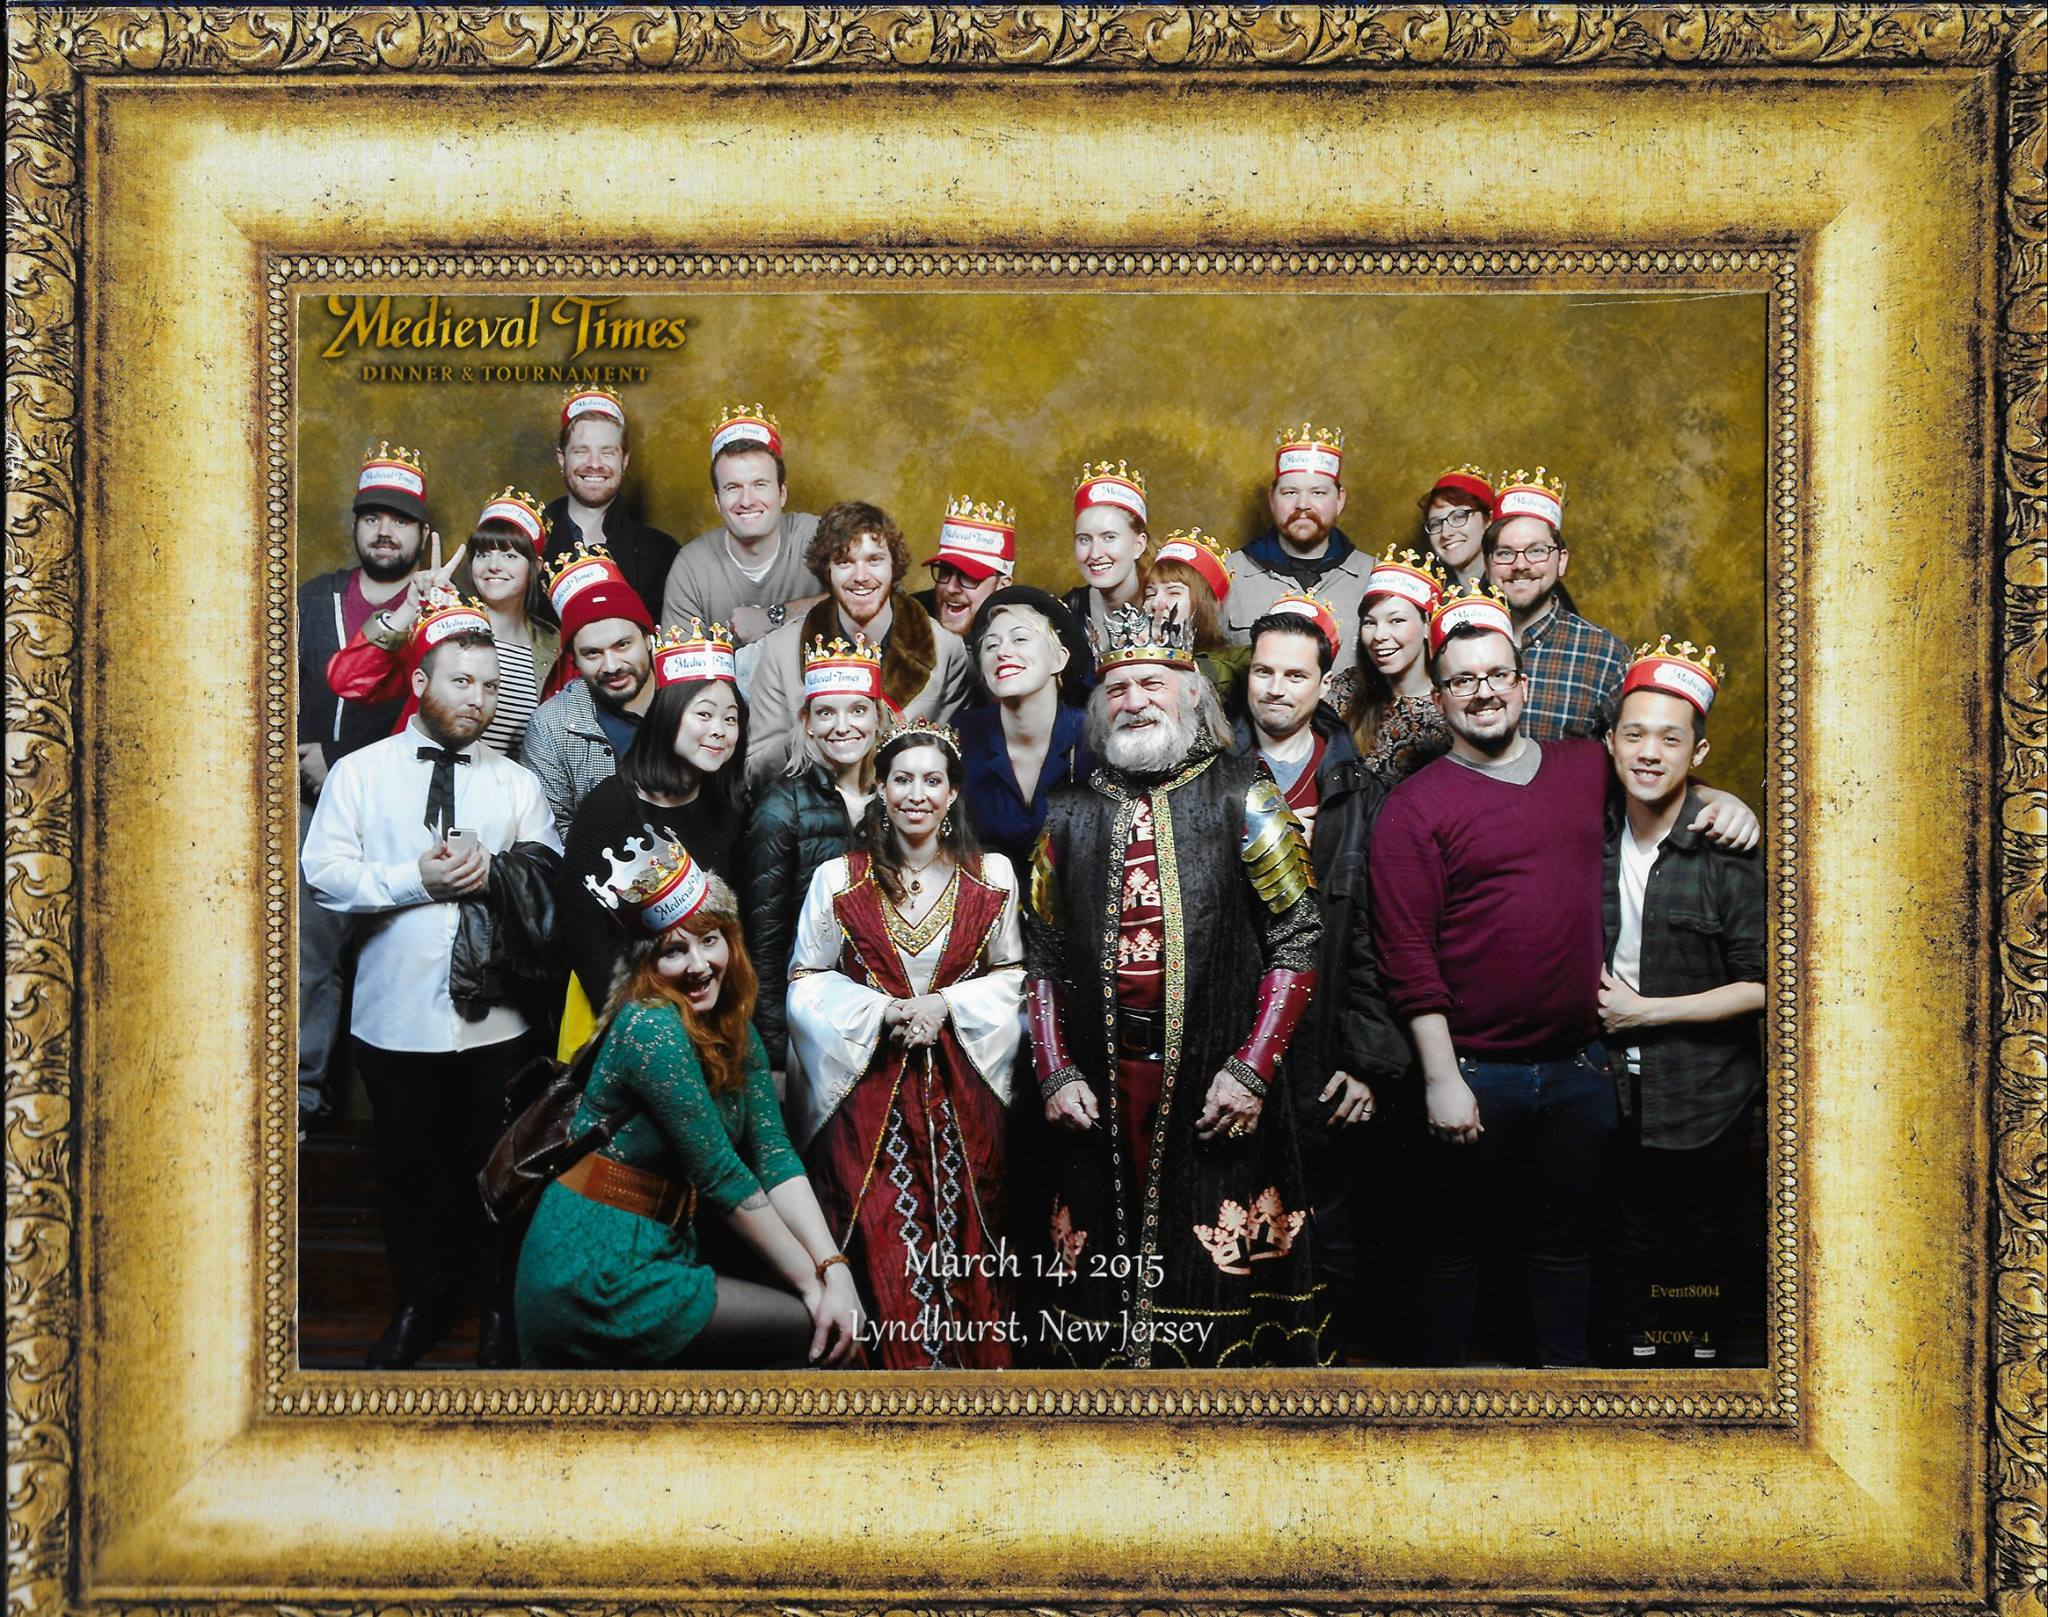 Medieval Times group photo